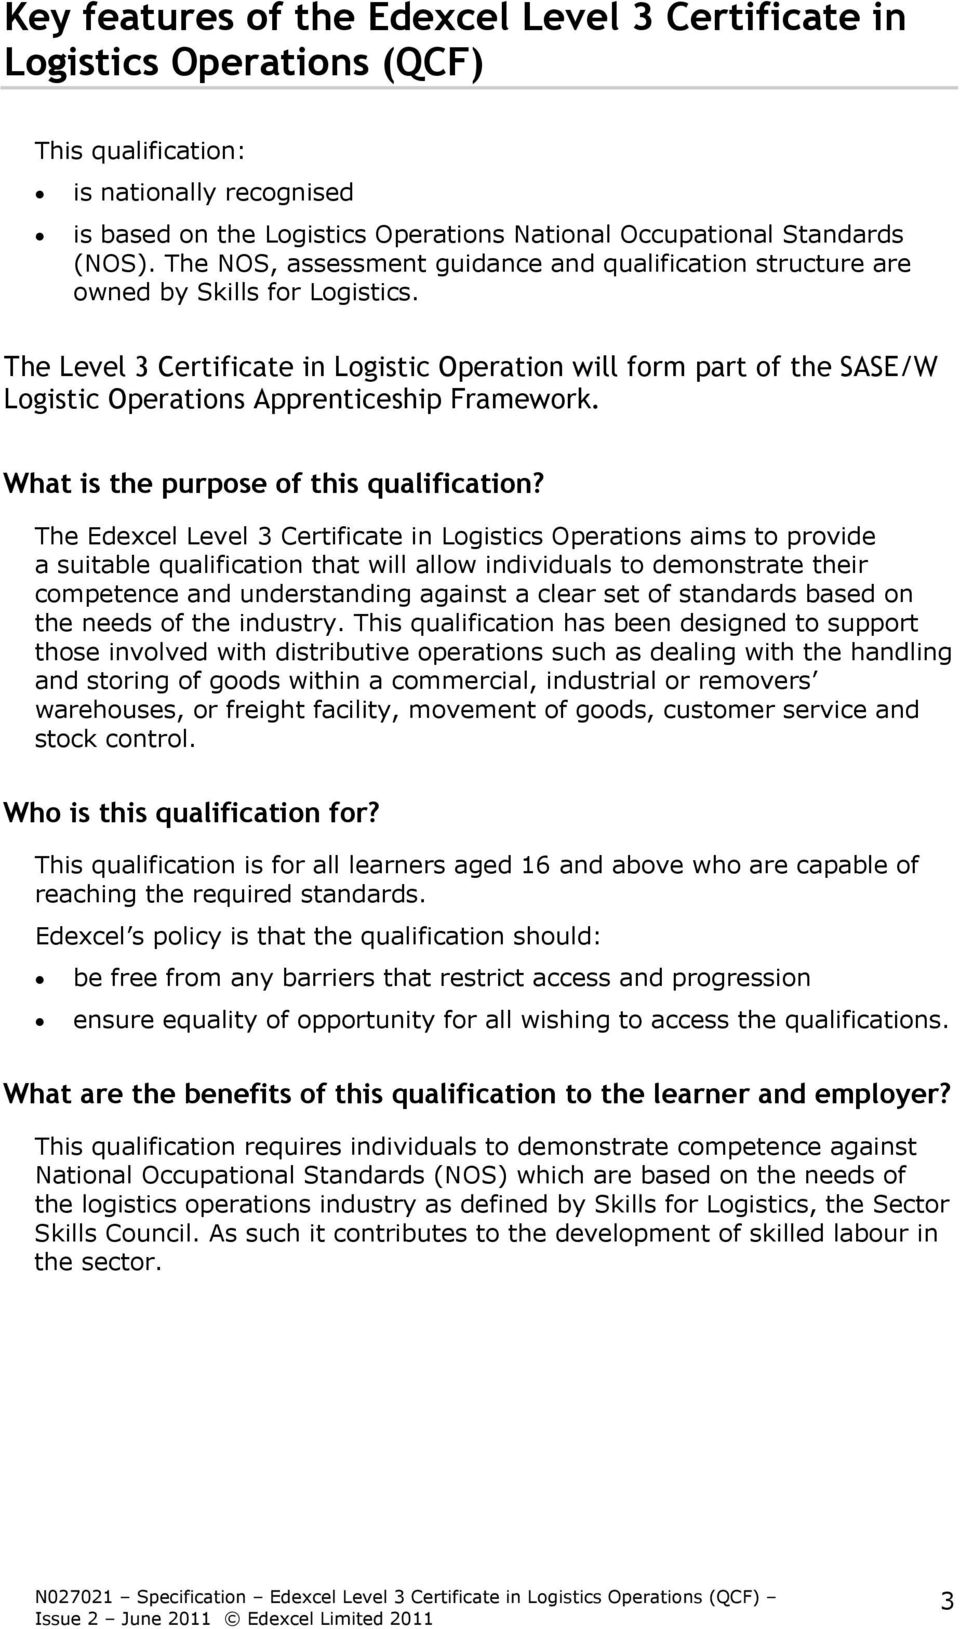 The Level 3 Certificate in Logistic Operation will form part of the SASE/W Logistic Operations Apprenticeship Framework. What is the purpose of this qualification?